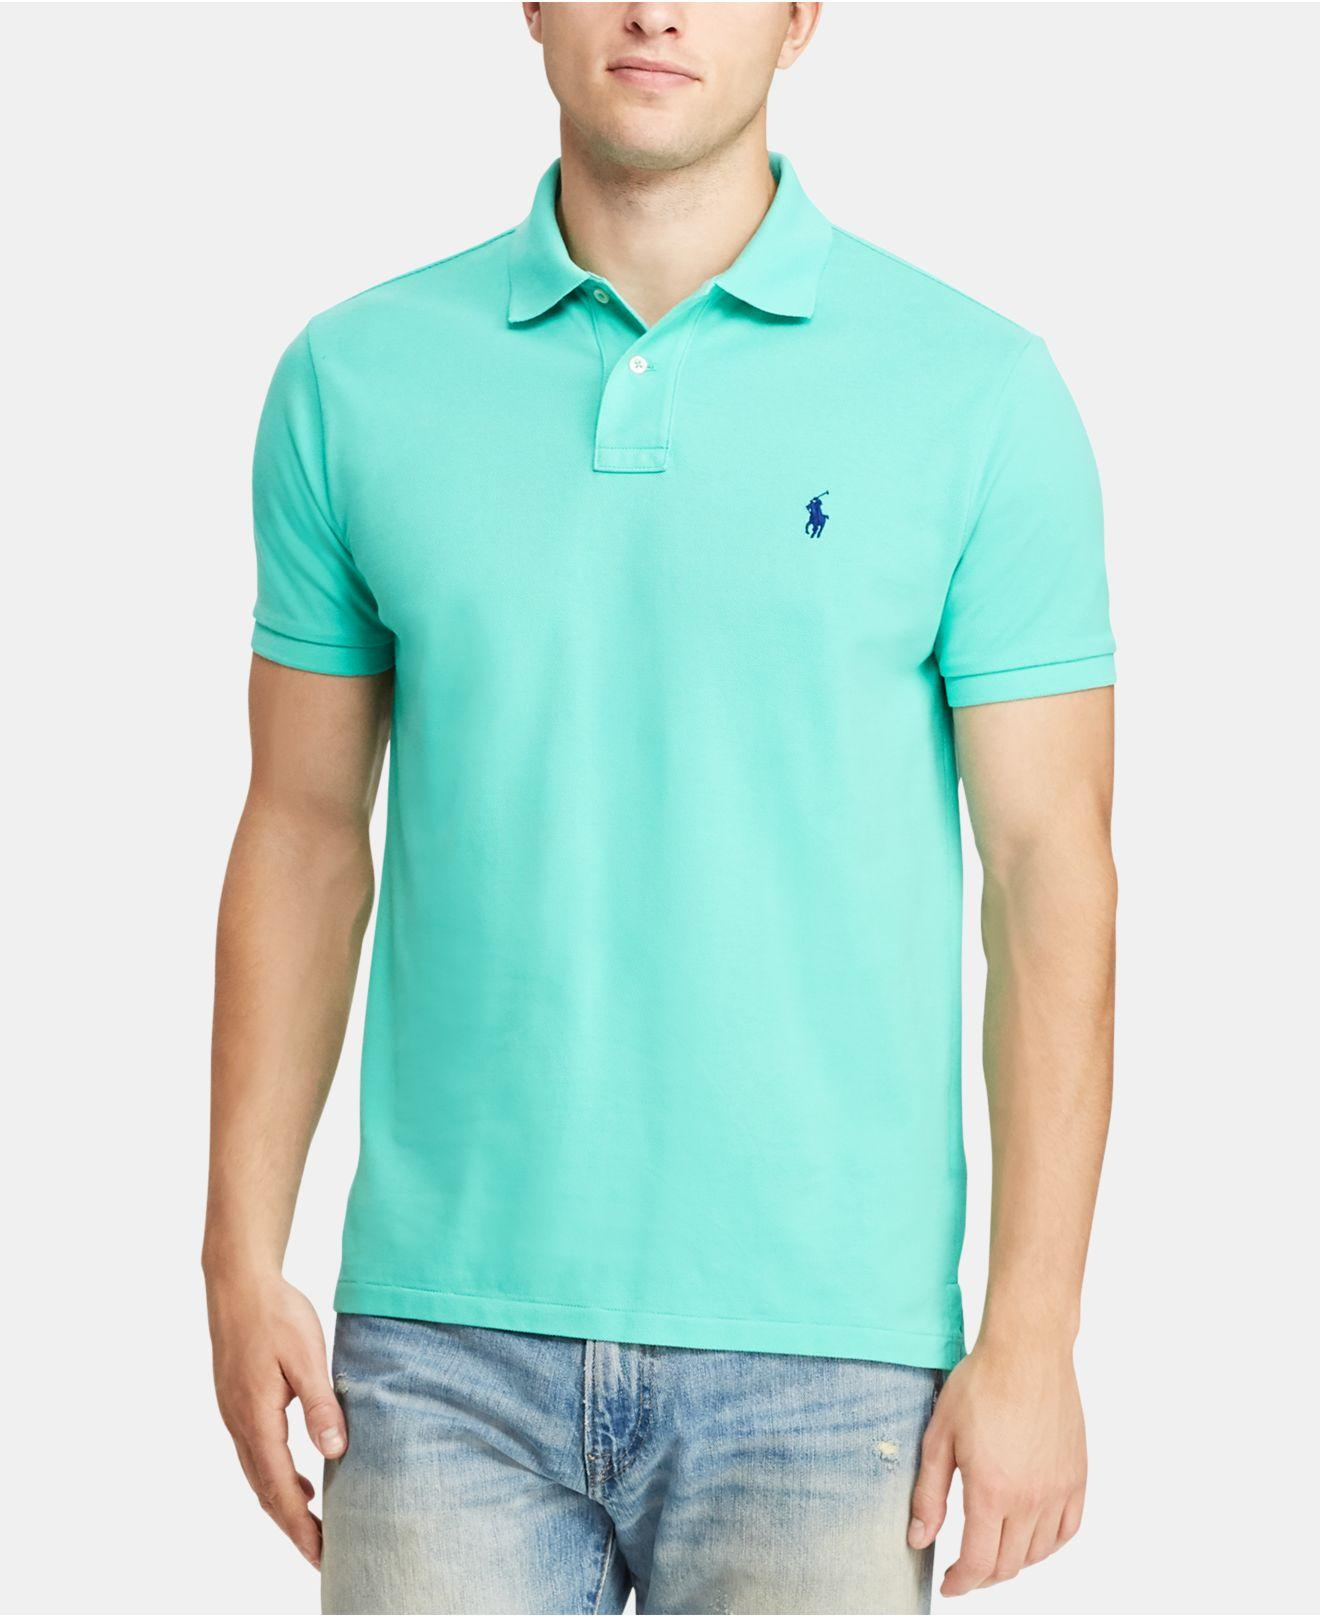 afce9132 Lyst - Polo Ralph Lauren Classic-fit Mesh Polo in Green for Men